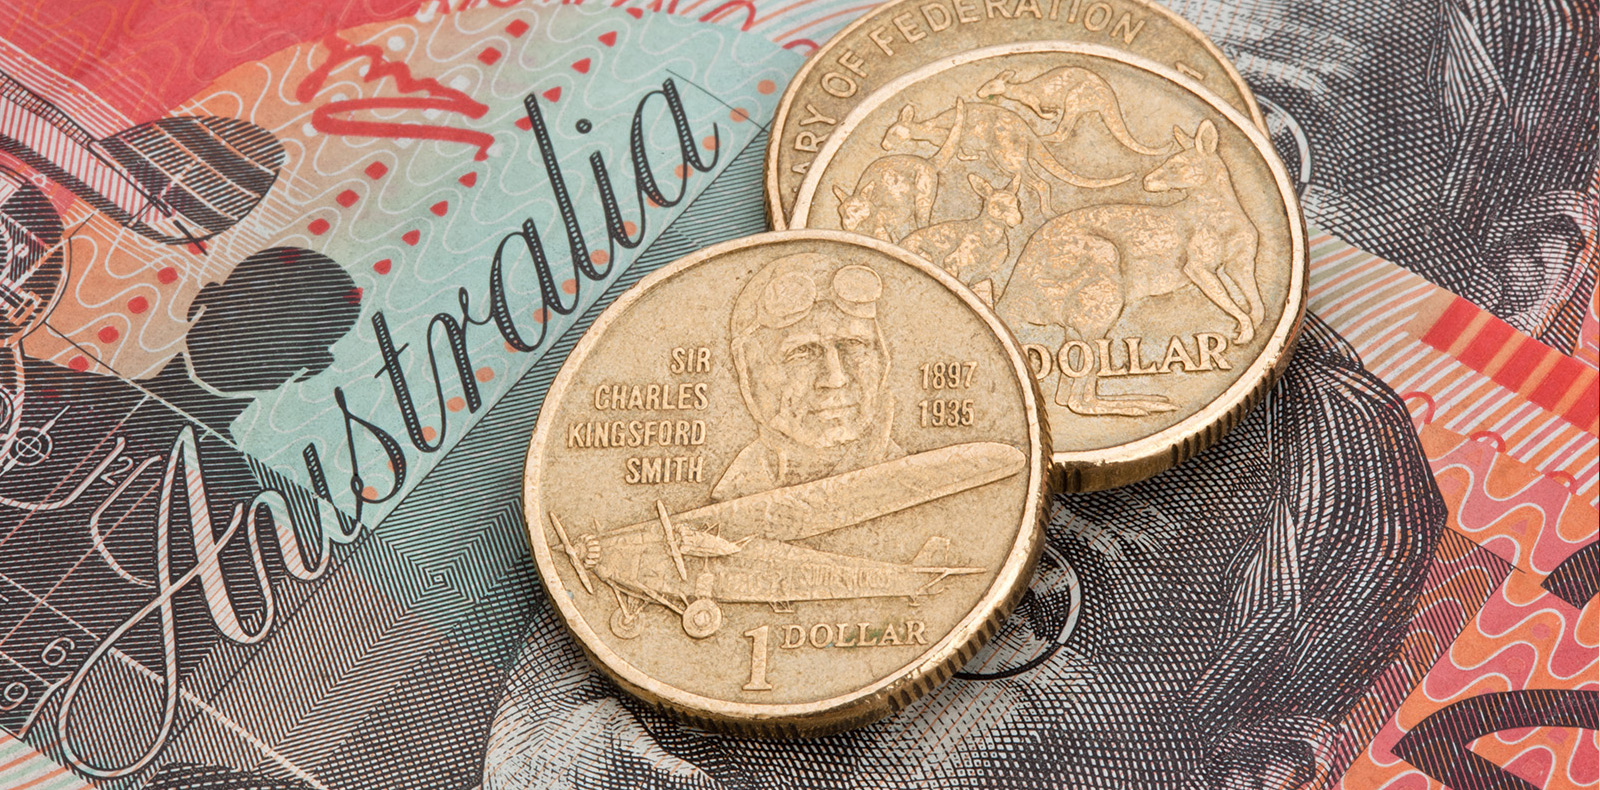 Australian Dollar Reaction to Latest Tariffs